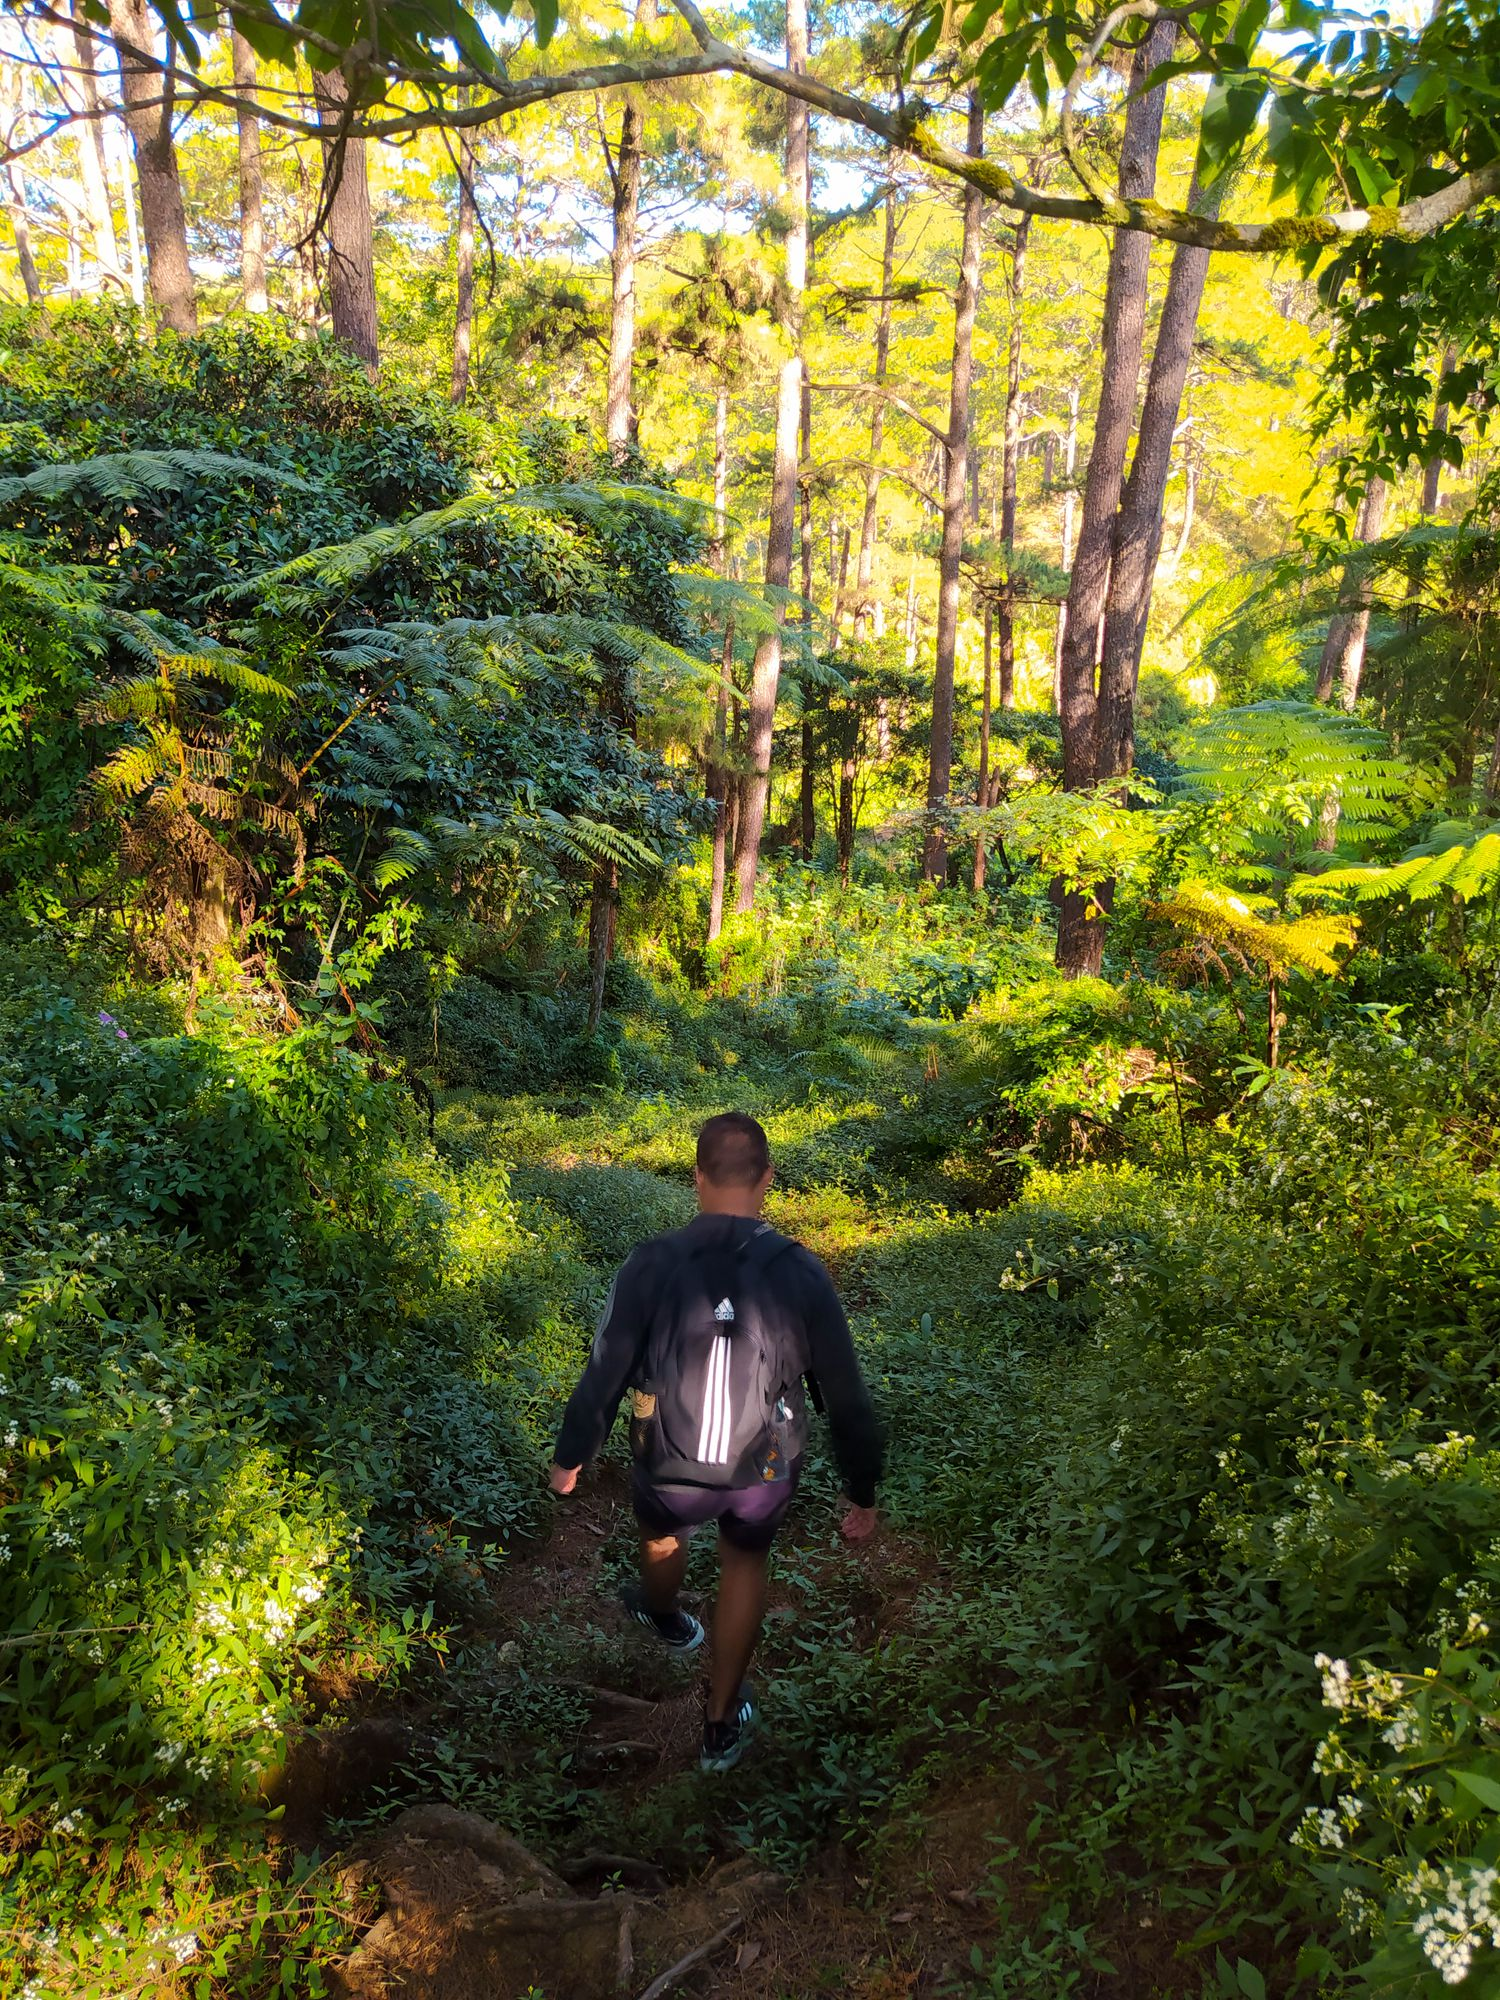 A man walking in the middle of ferns, trees, and vegetation